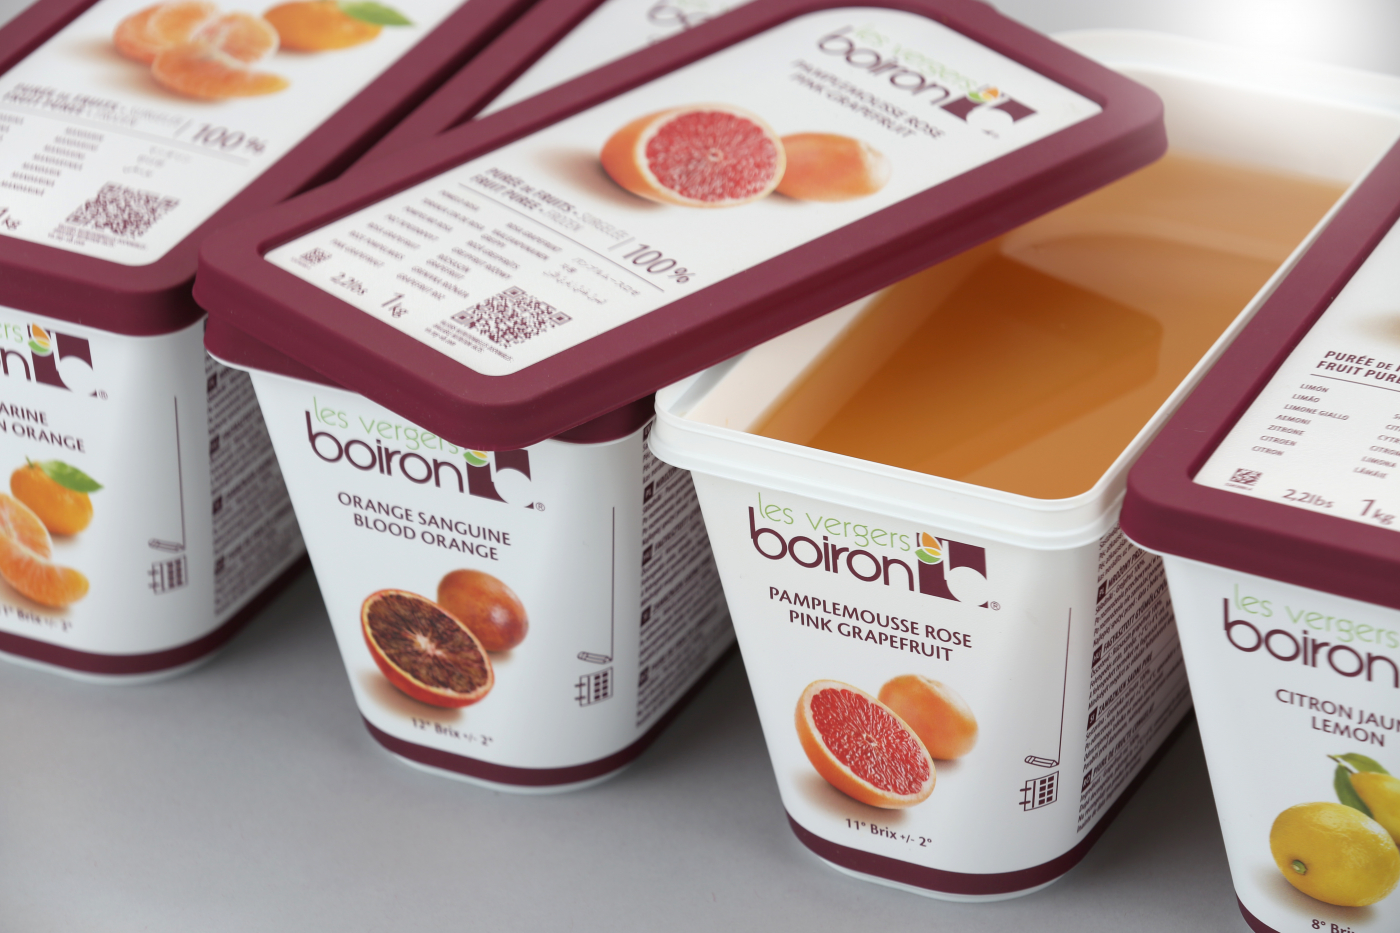 LES VERGERS BOIRON EXTENDS NEW TRAY ACROSS THE FROZEN PUREE RANGE